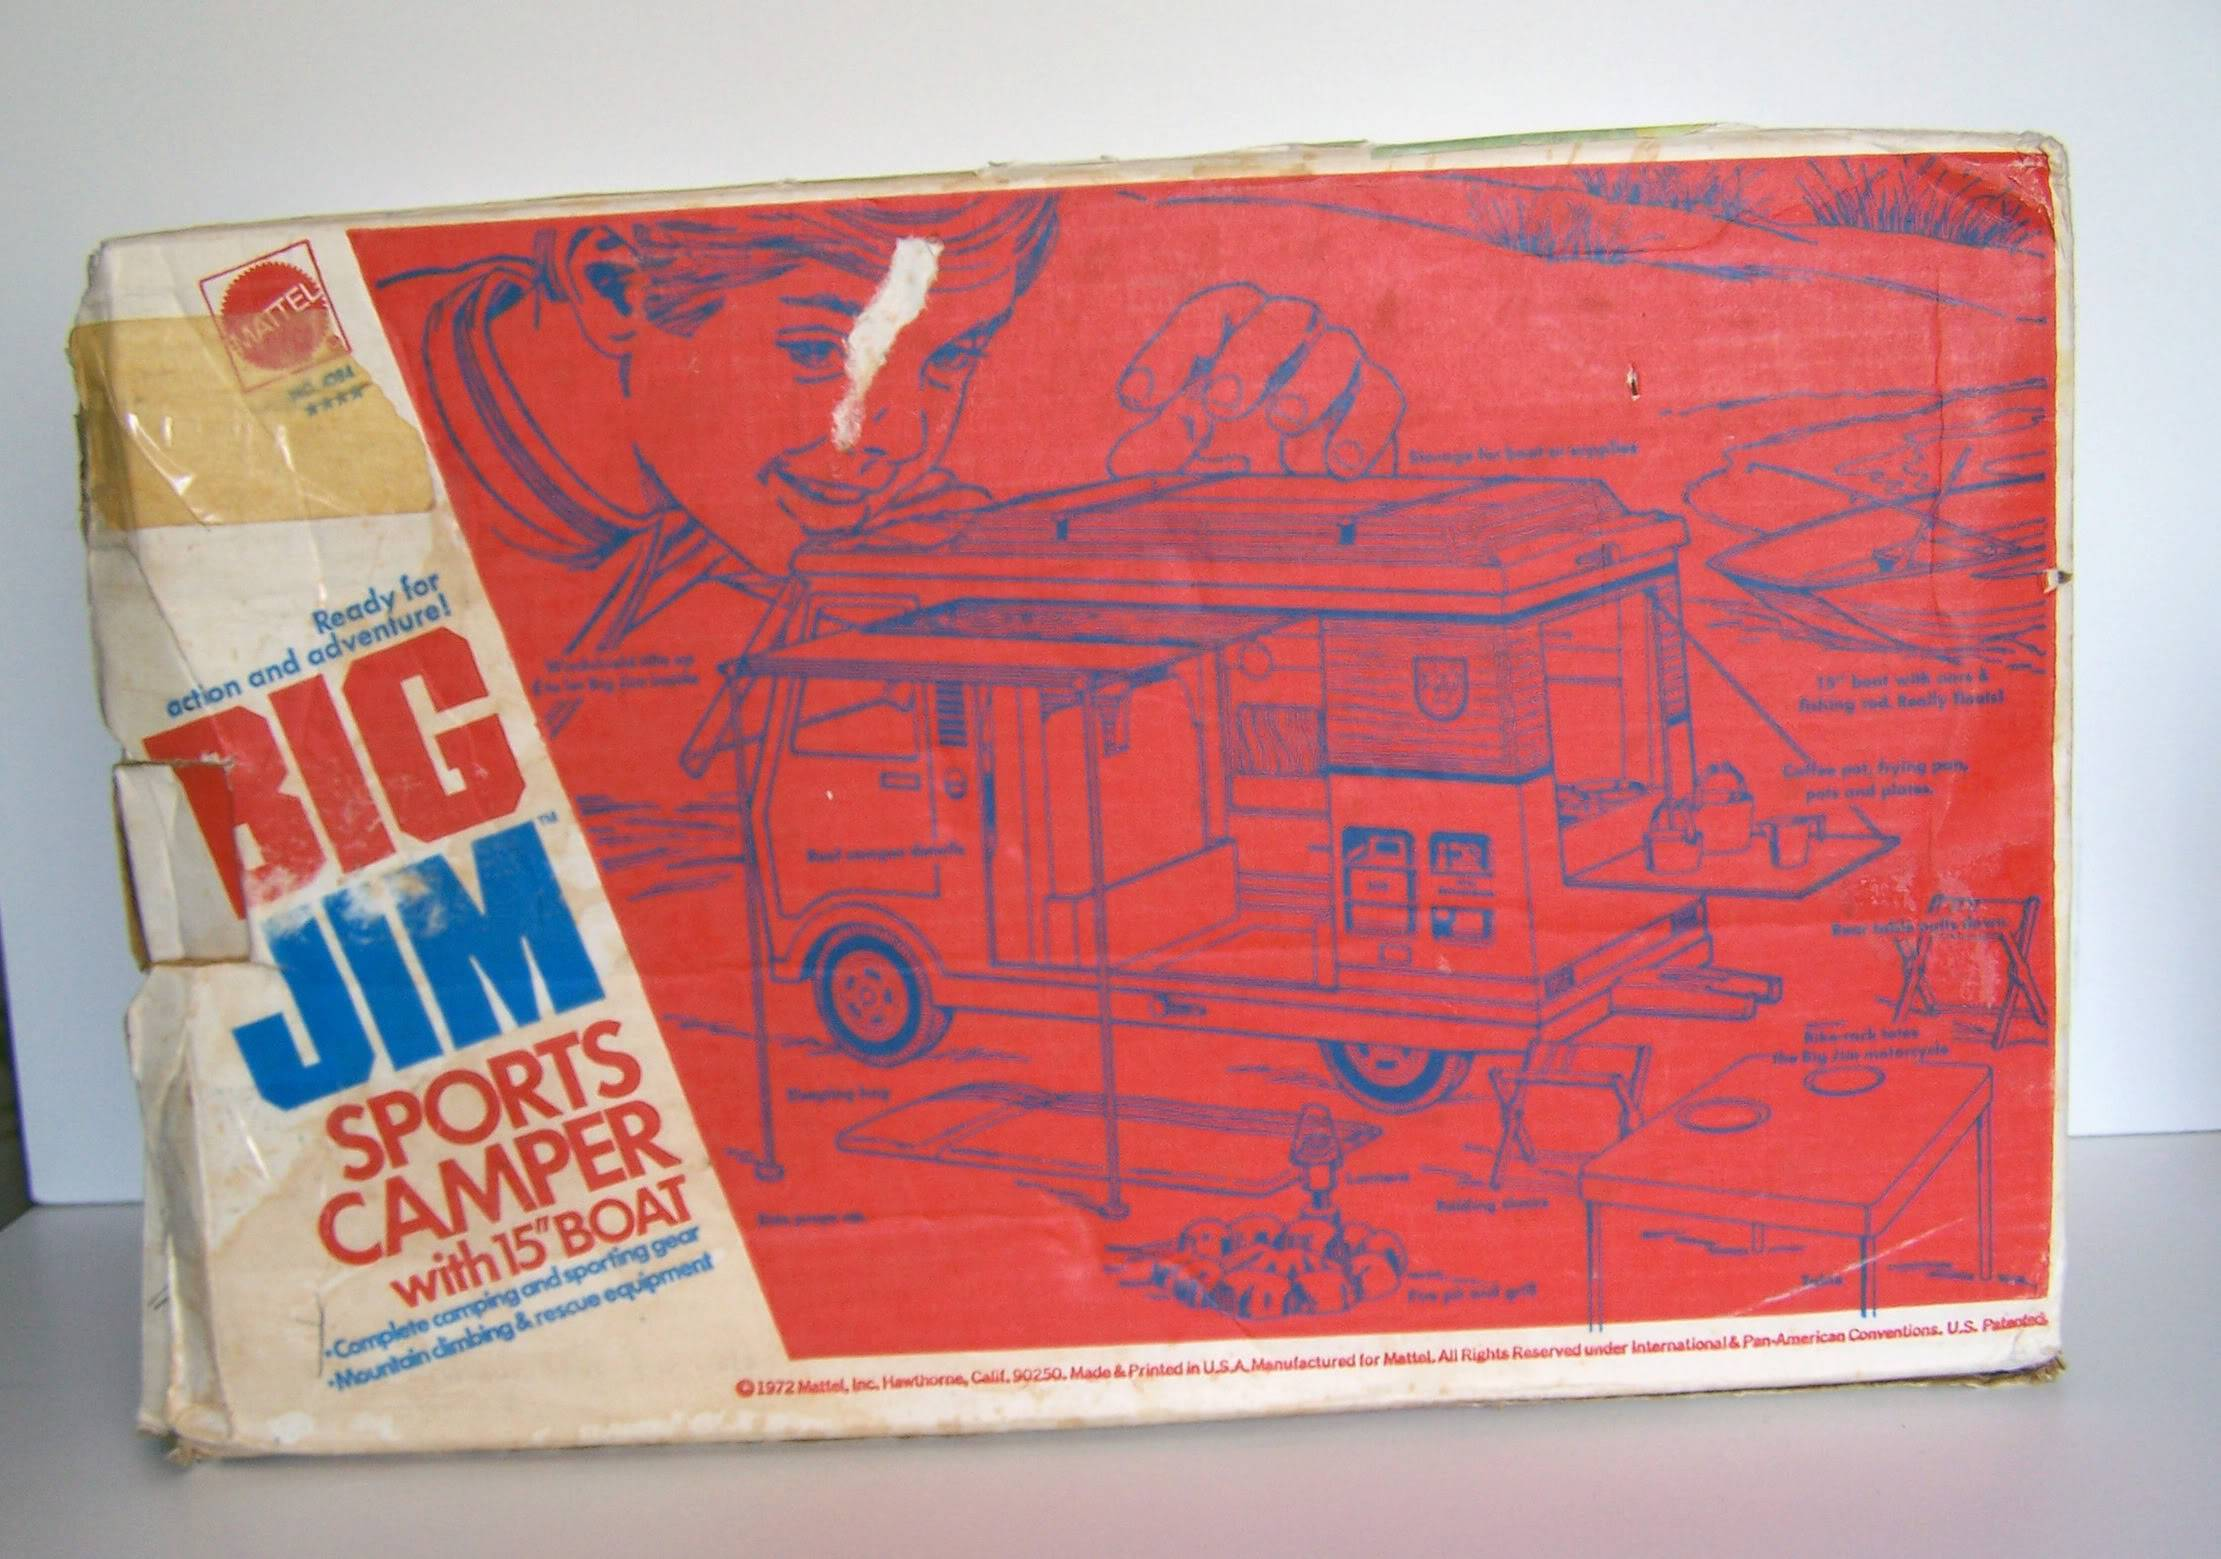 FS: Big Jim Sports Camper vehicle 101_9460